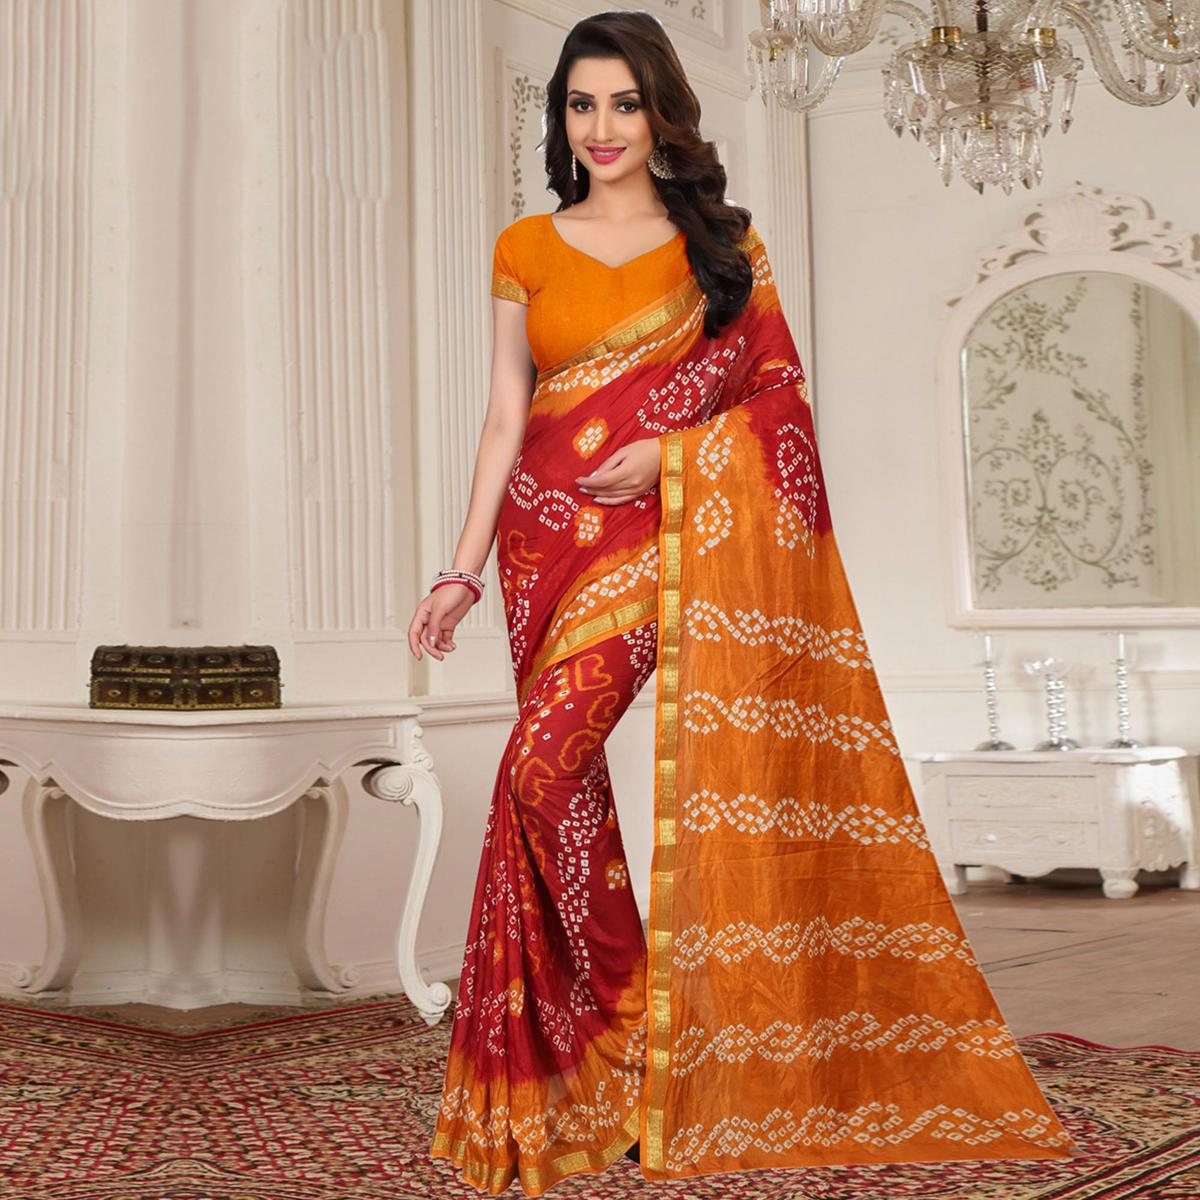 Majesty Red - Mustard Yellow Colored Casual Wear Printed Tapeta Silk Saree